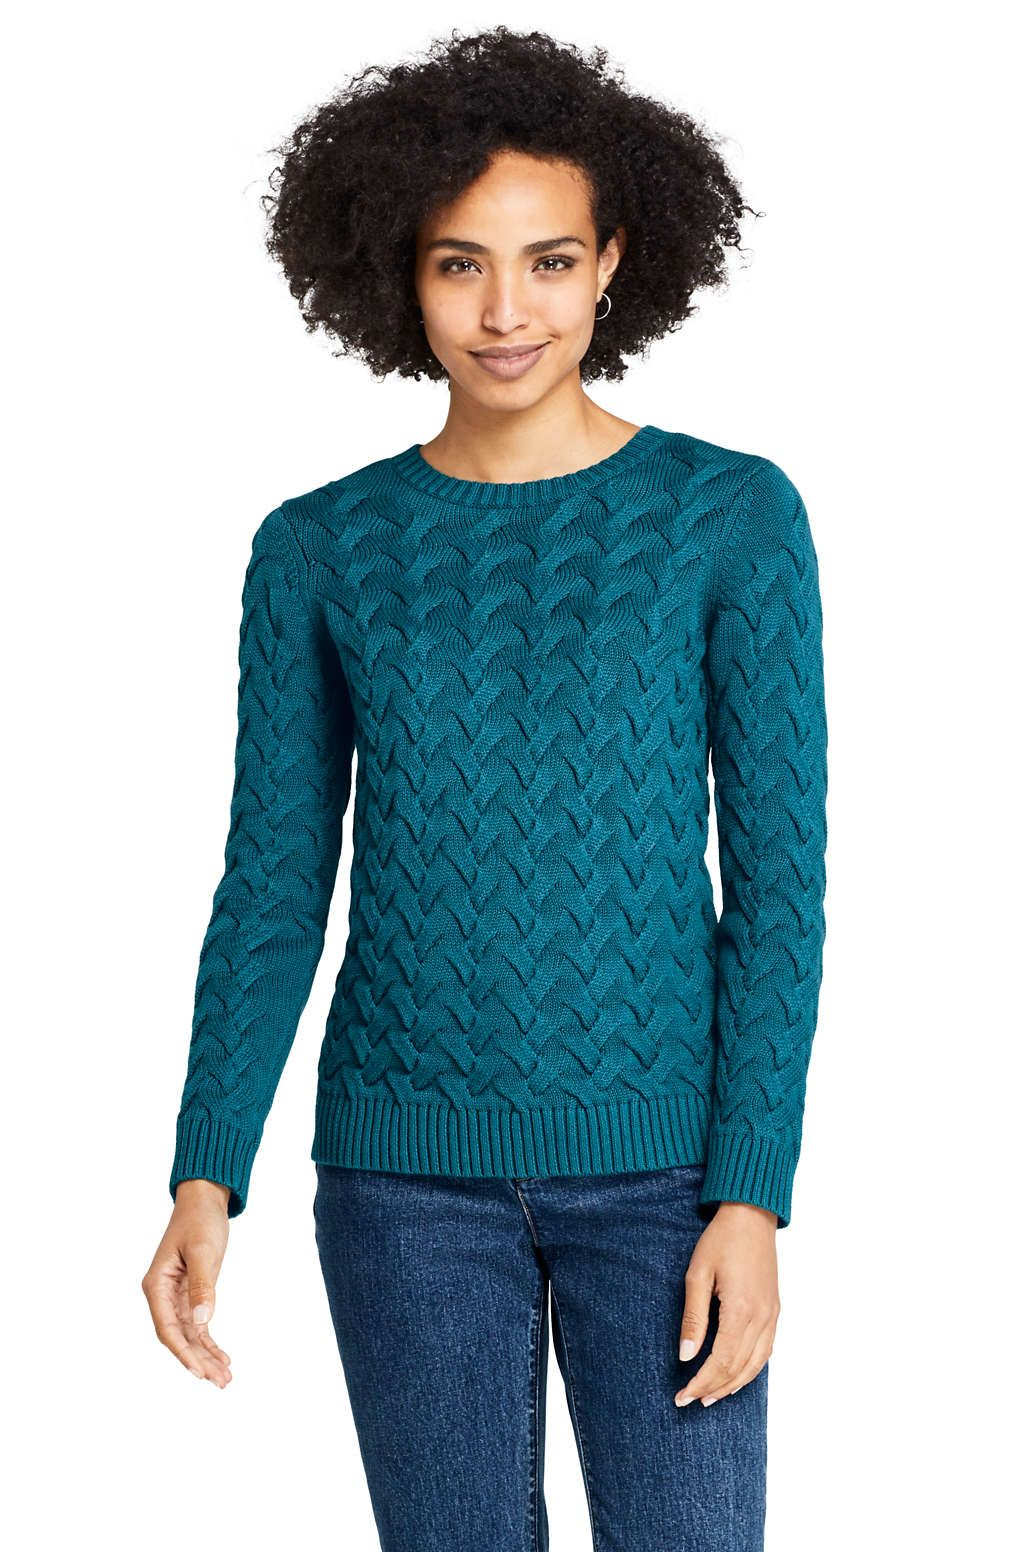 Women S Drifter Cotton Crew Neck Sweater From Lands End Sweaters For Women Stylish Sweaters Crew Neck Sweater [ 1552 x 1035 Pixel ]